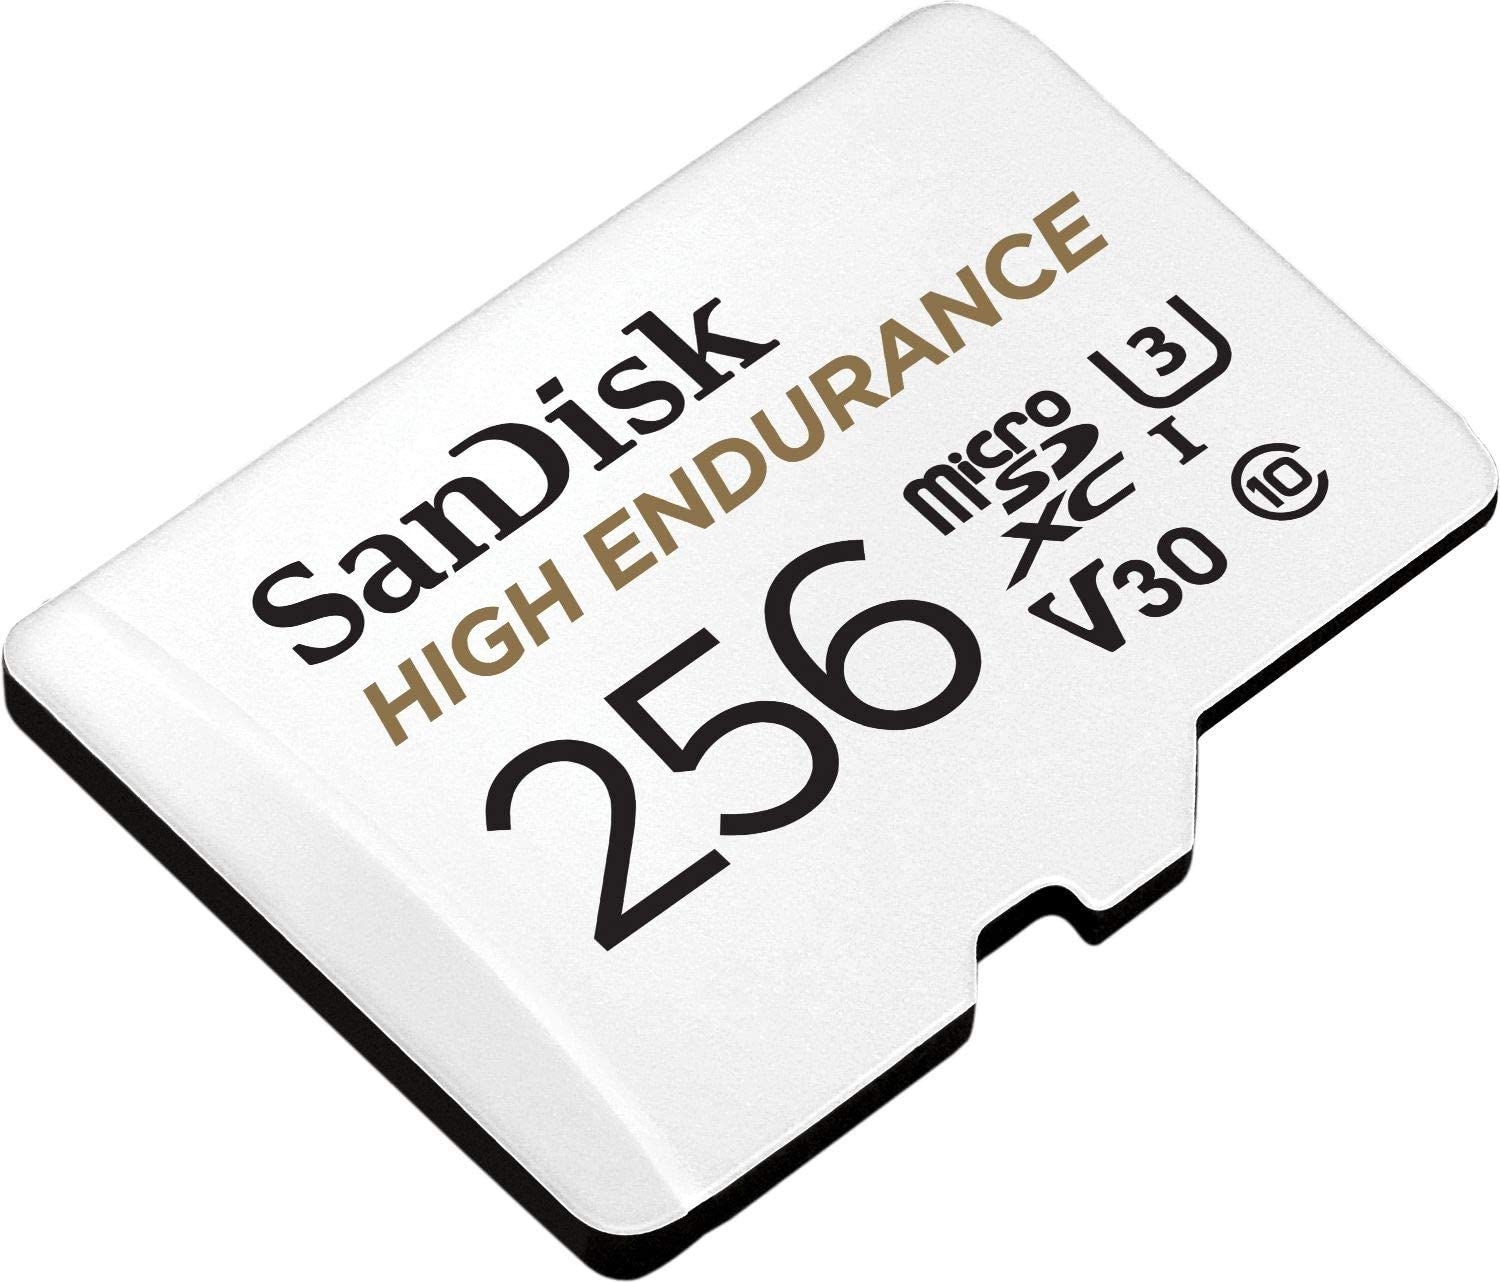 SD Adaptor 120,000 Hours Endurance SanDisk MAX ENDURANCE Video Monitoring for Dashcams /& Home Monitoring 256 GB microSDXC Memory Card